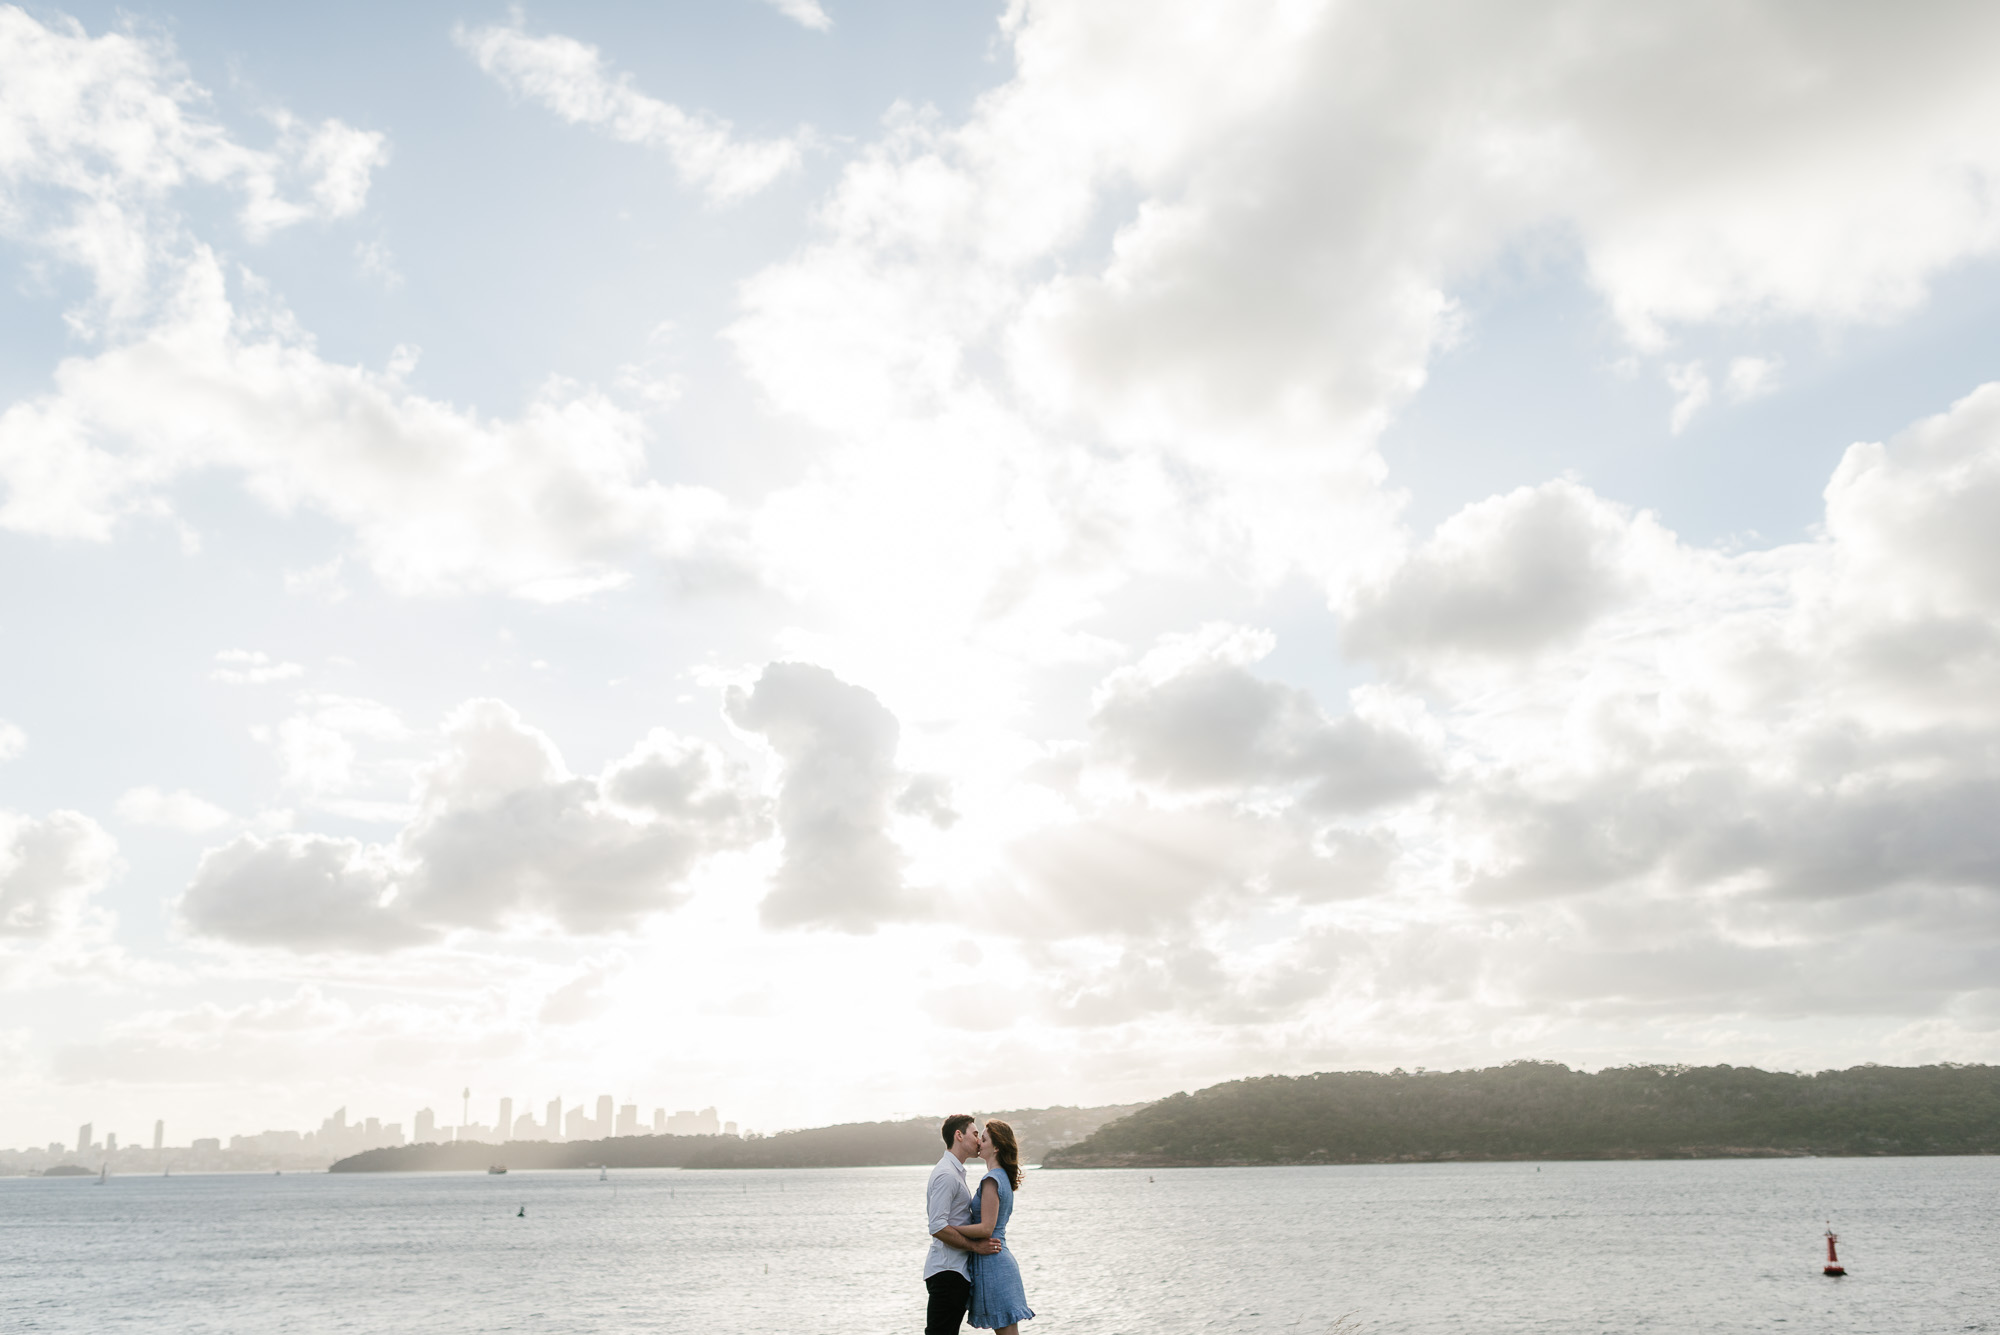 PhotographybyRenata_Proposal_Shoot_Watsons-Bay-Camp_Cove-282.JPG